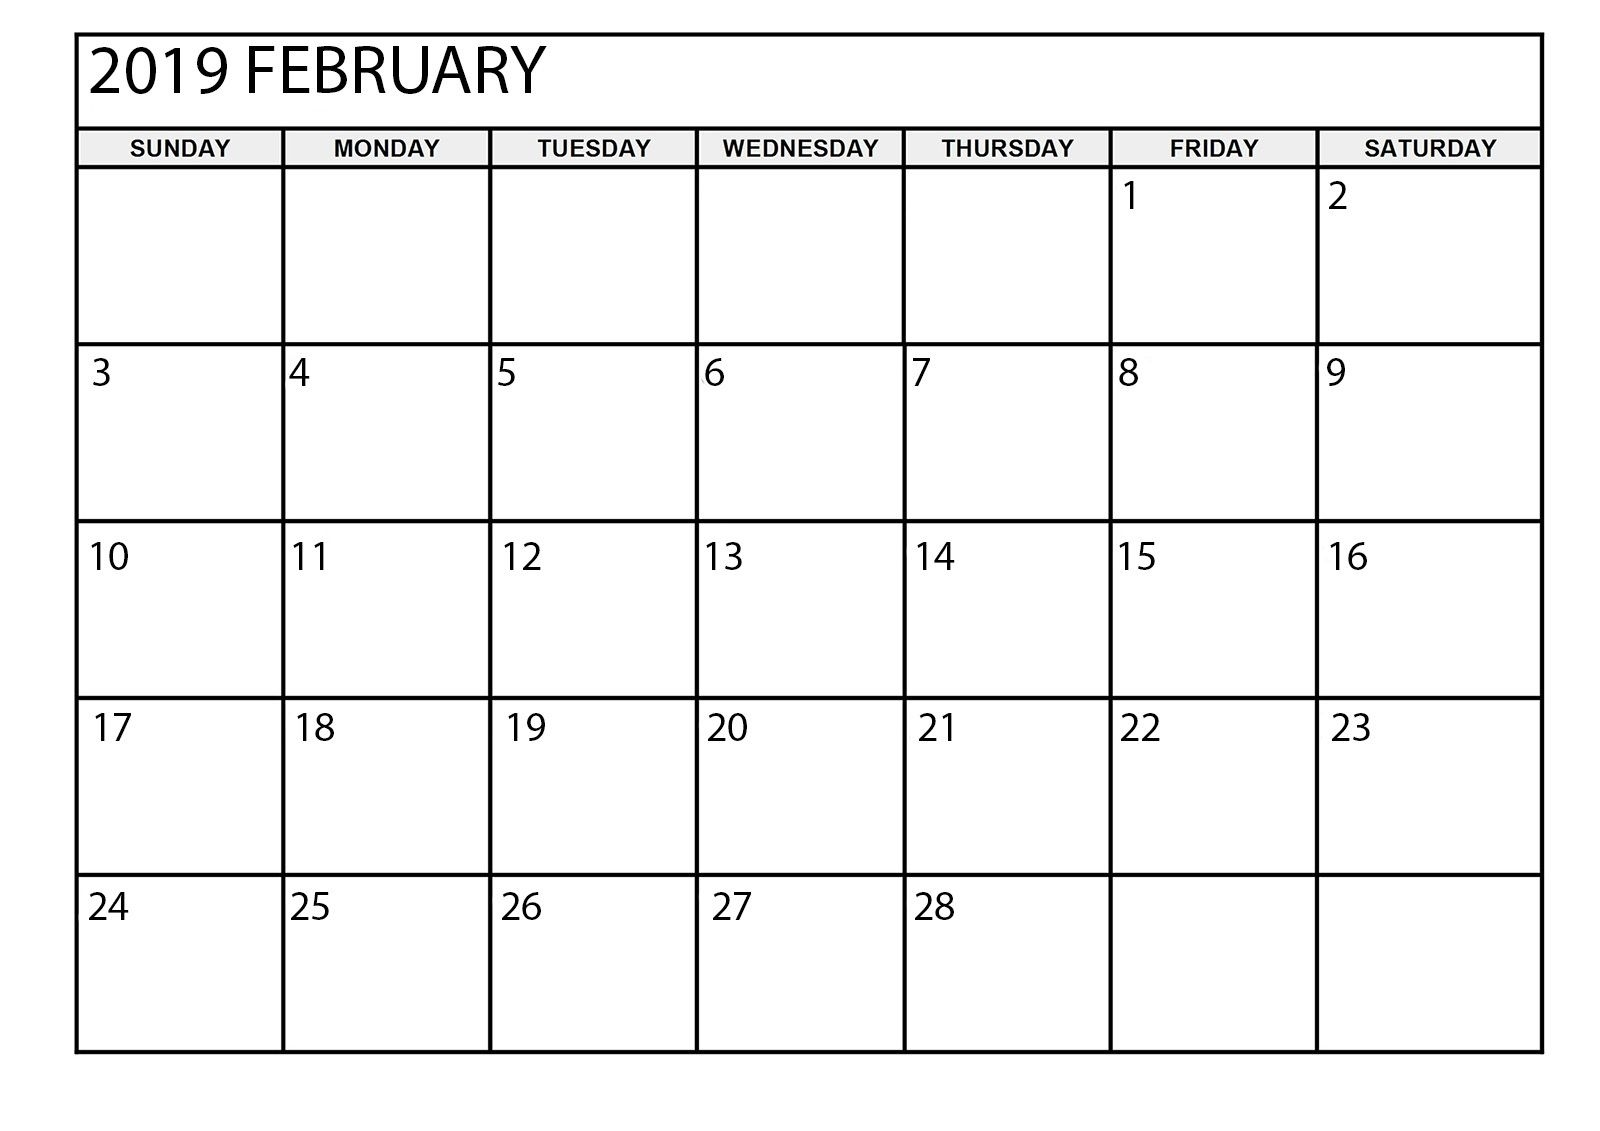 February 2019 Calendar Printable Large | February 2019 Calendar with Large Printable Blank Calendar Pages